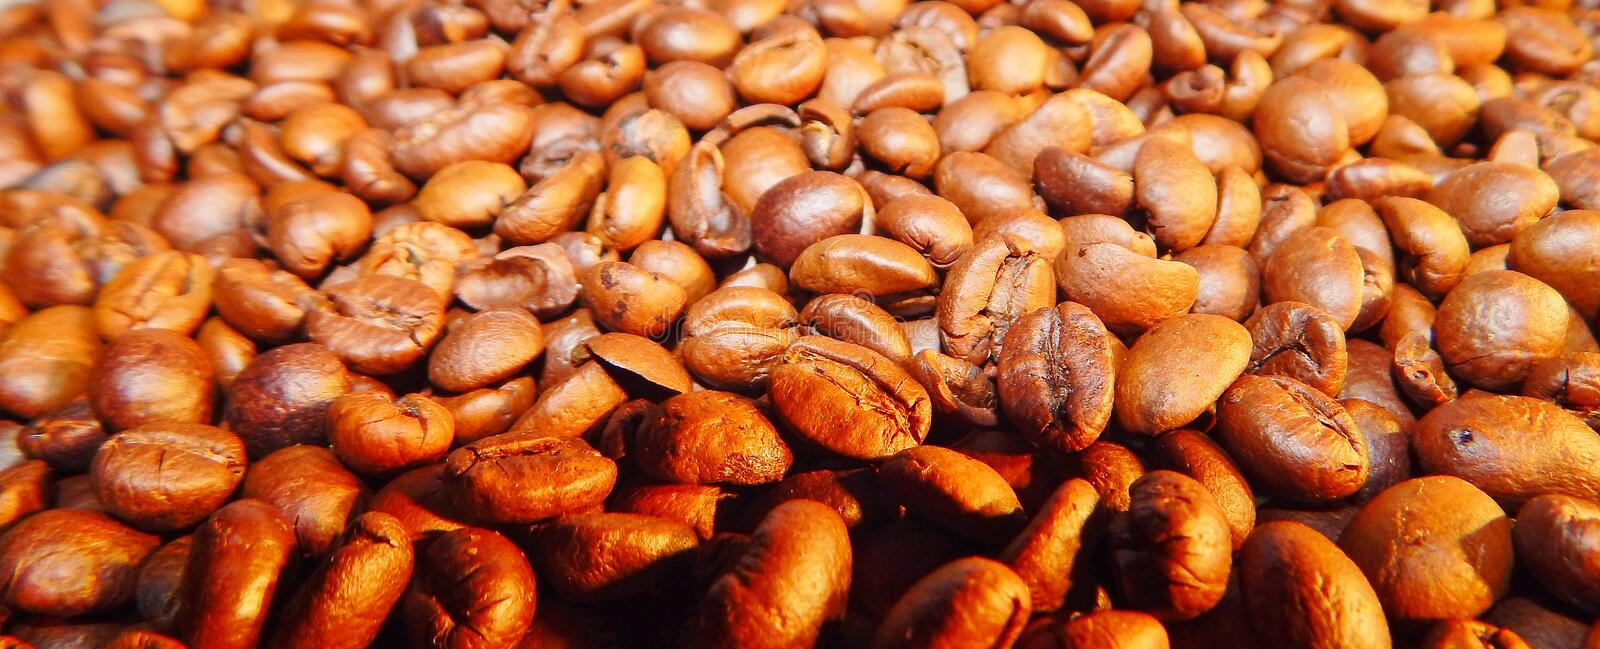 Download Roasted Coffee In Beans Stock Photo - Image: 83710281